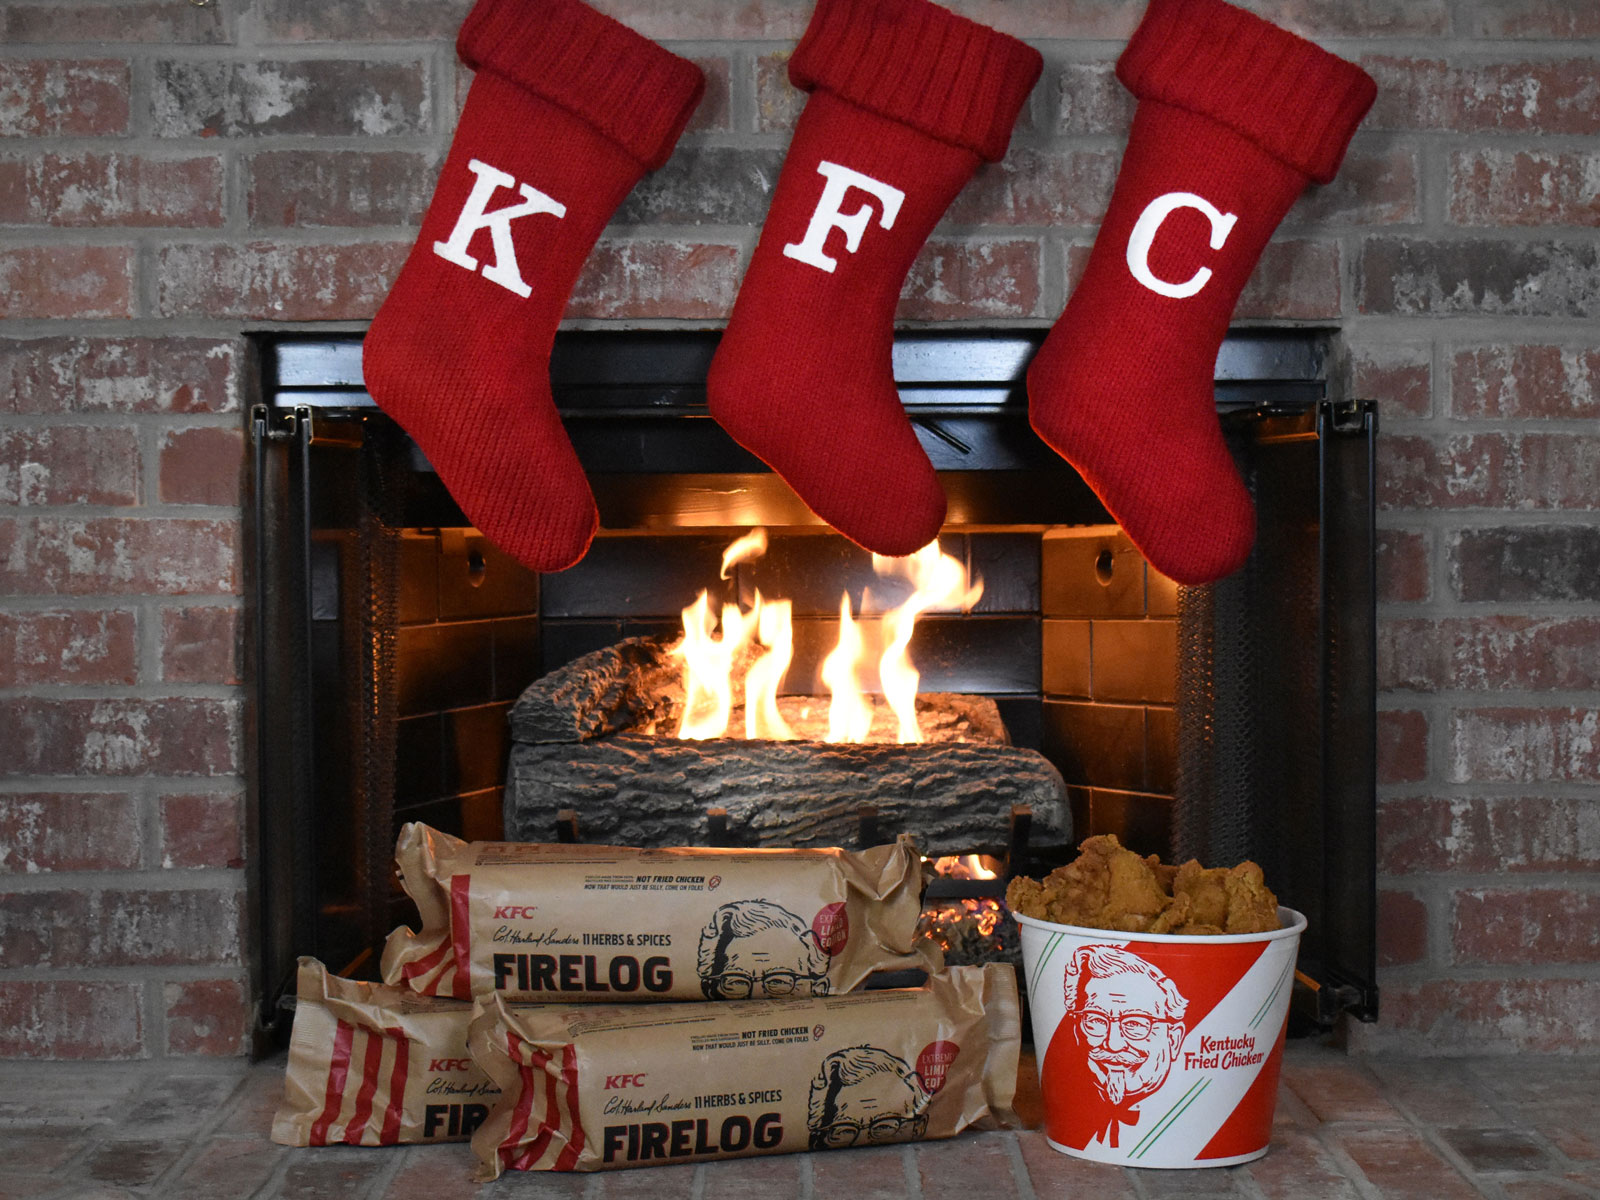 KFC Put Its 11 Herbs & Spices into a Firelog for Christmas